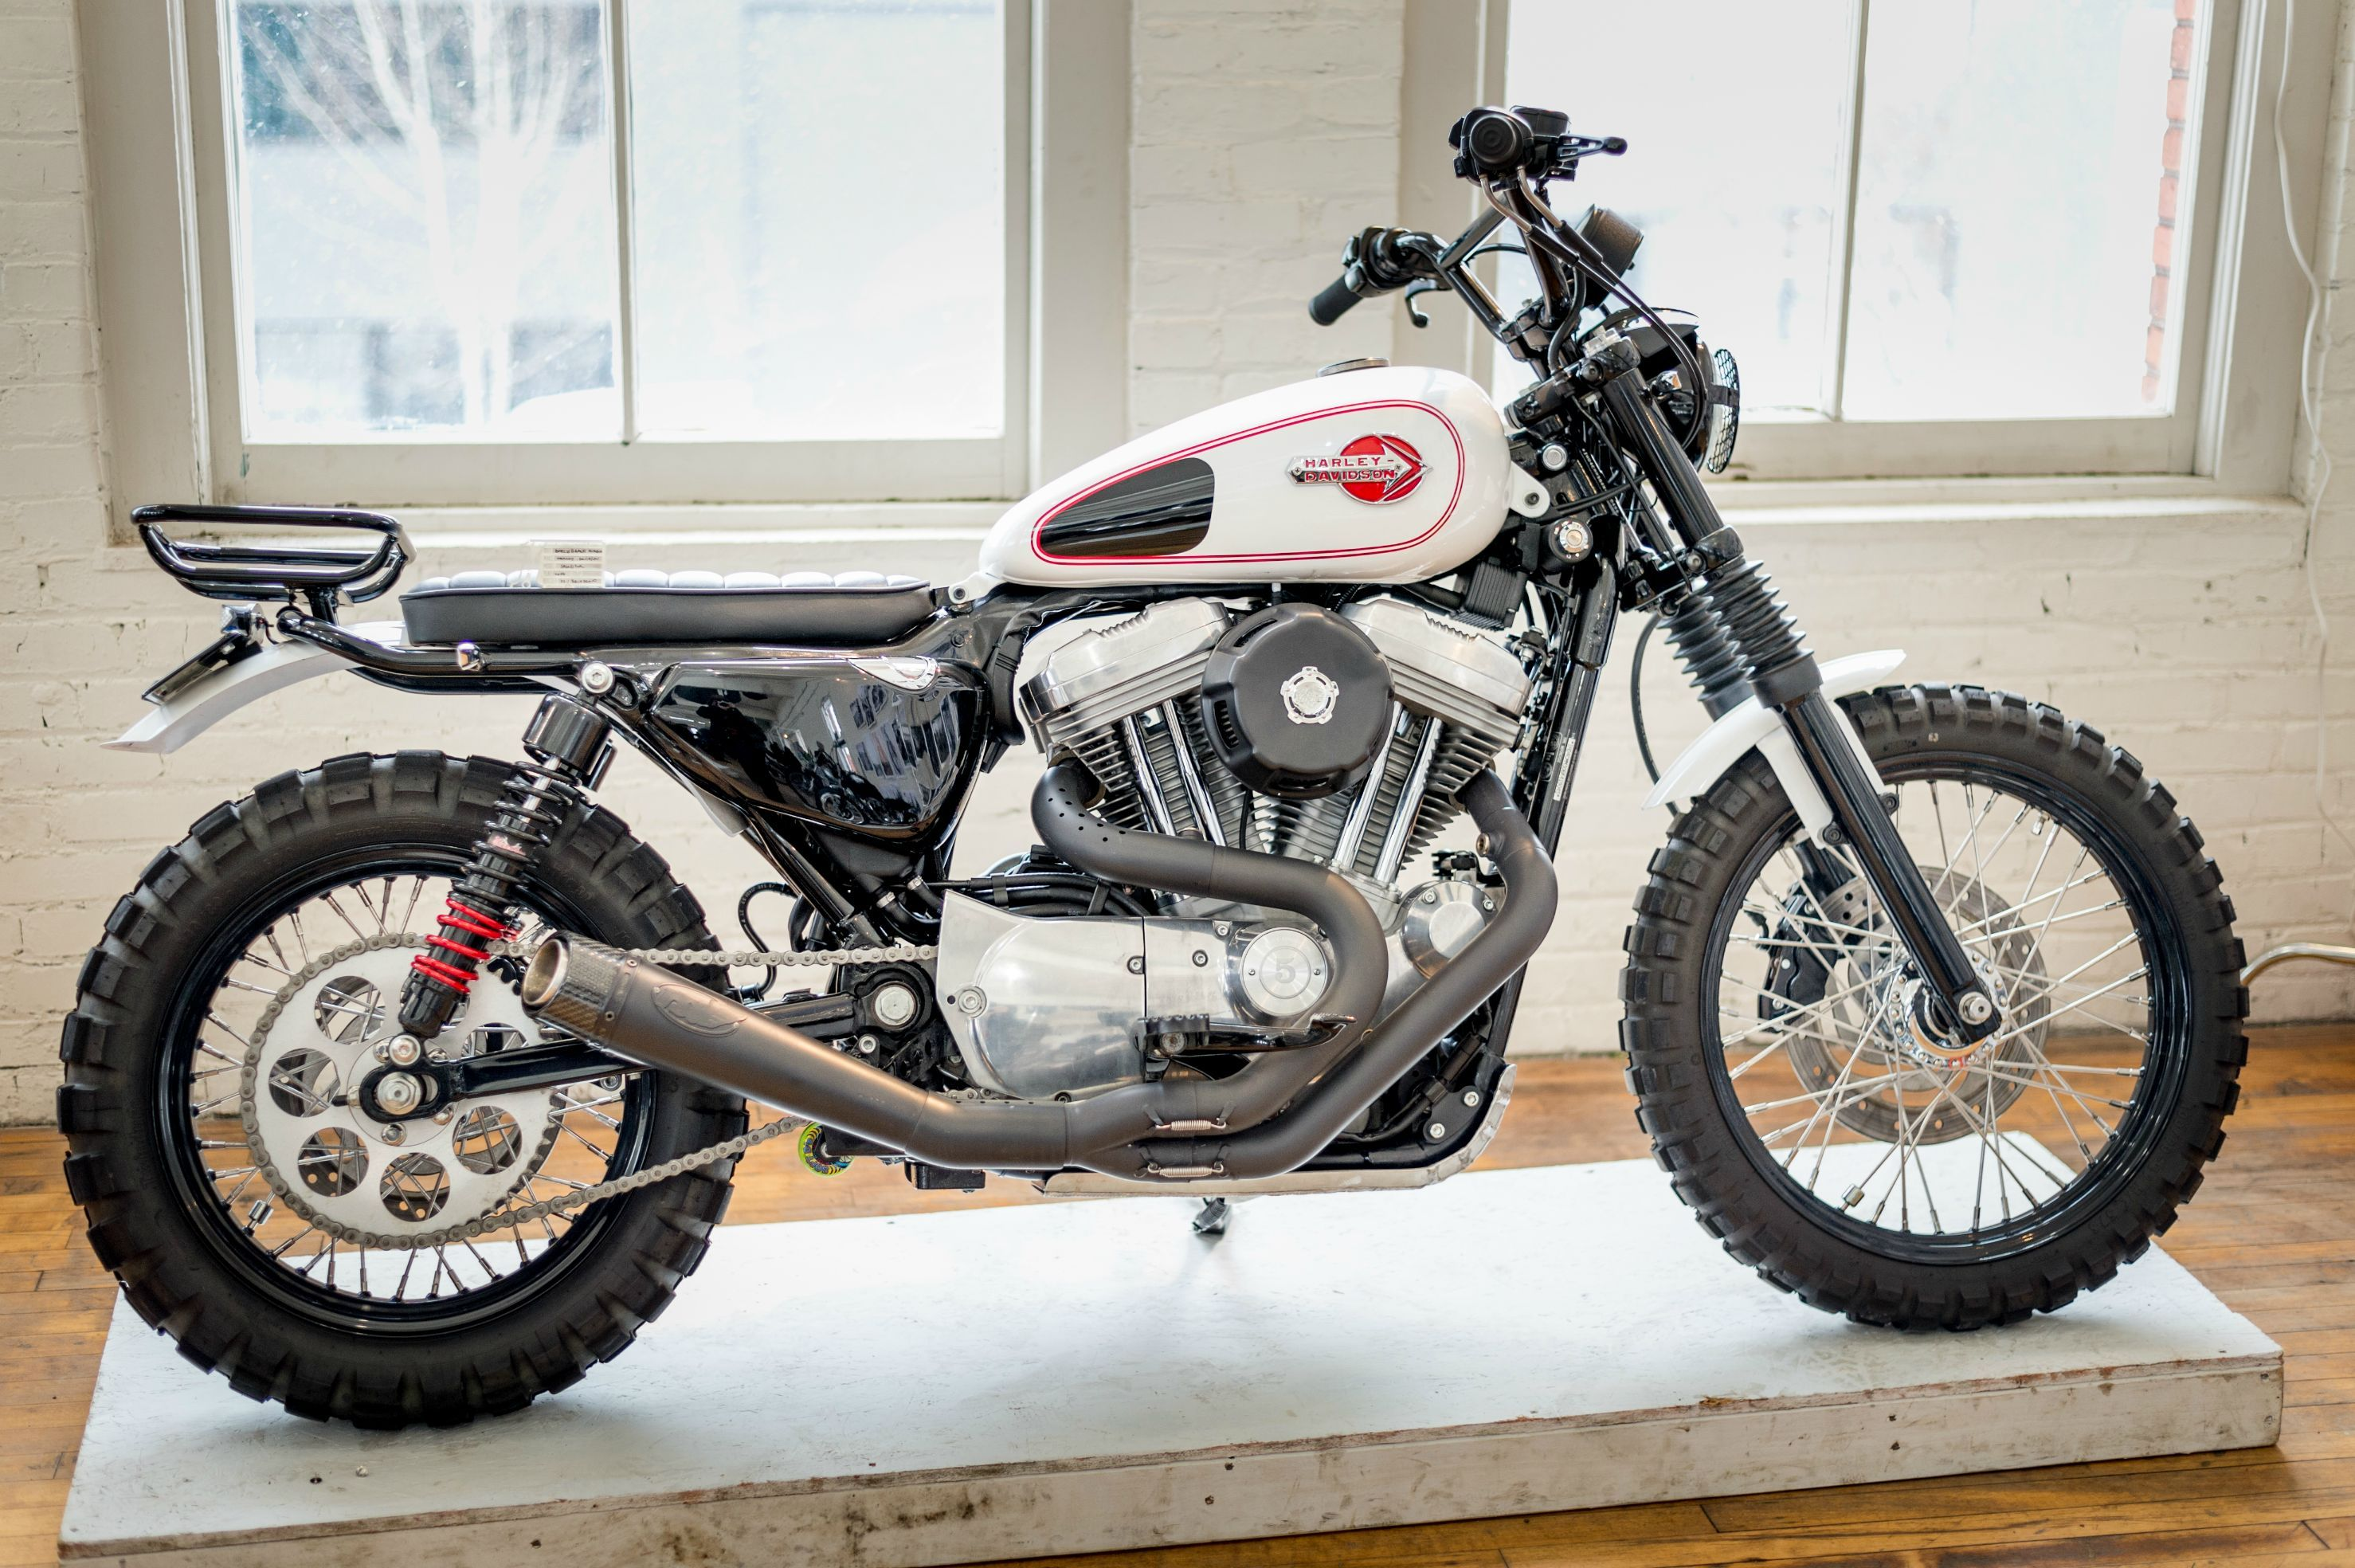 harley scrambler custom hd wallpaper from gallsource | hd